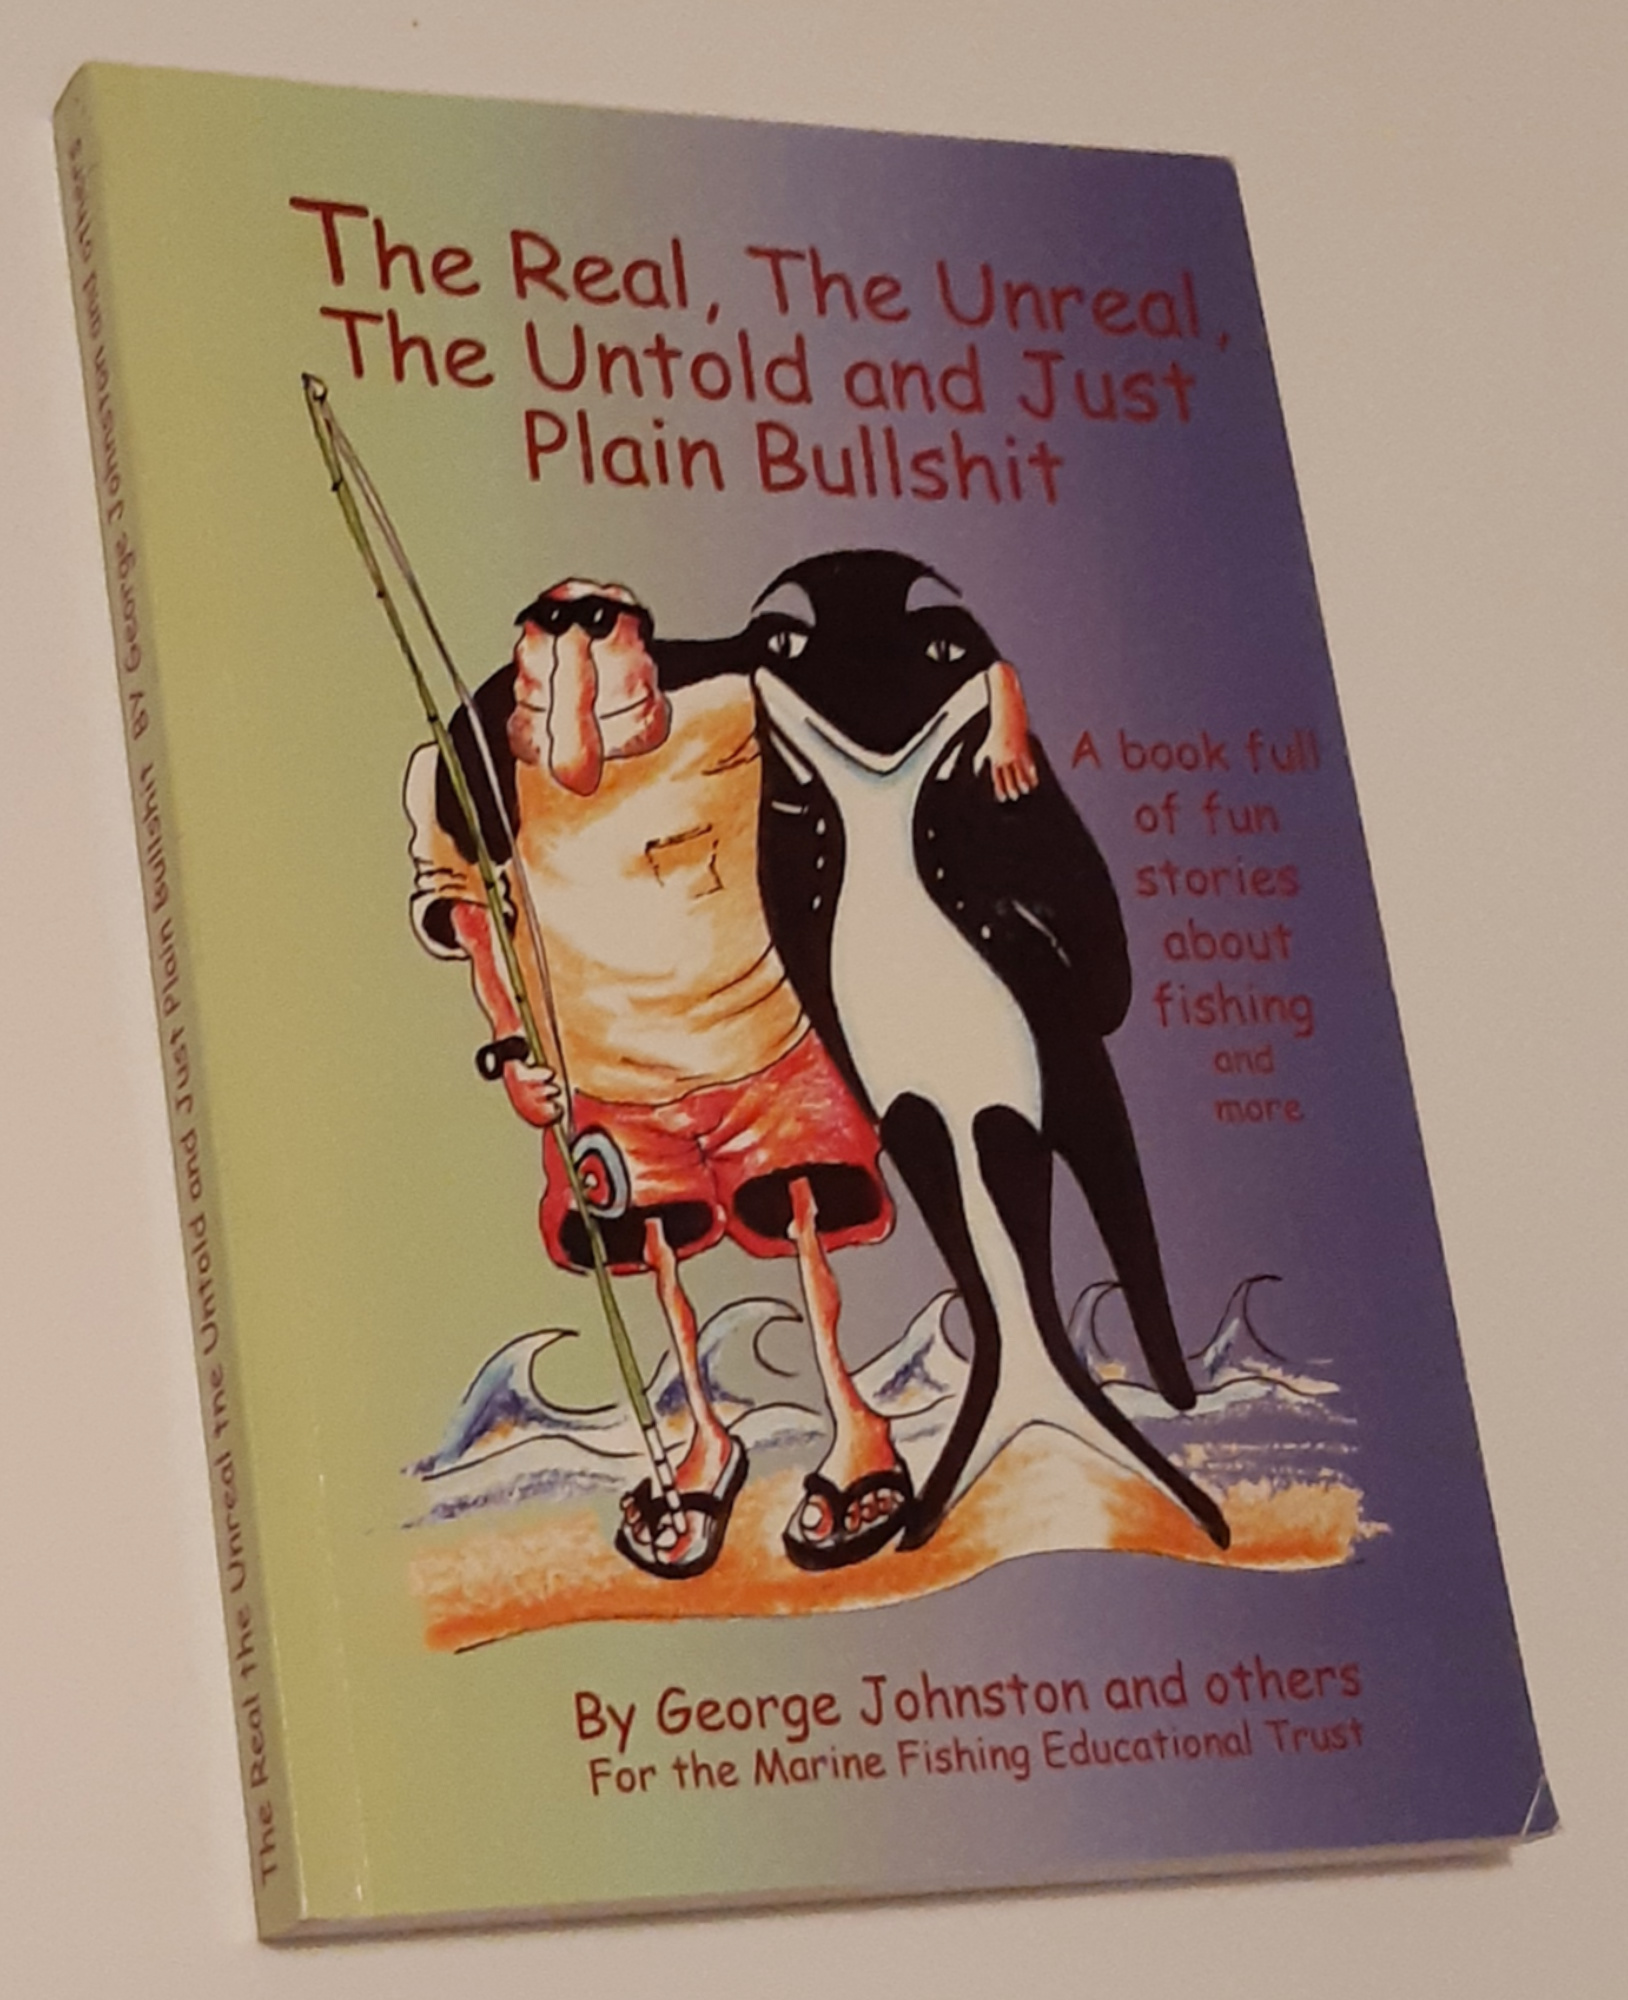 Image for THE REAL, THE UNREAL, THE UNTOLD AND JUST PLAIN BULLSHIT (Signed and Inscribed Copy)